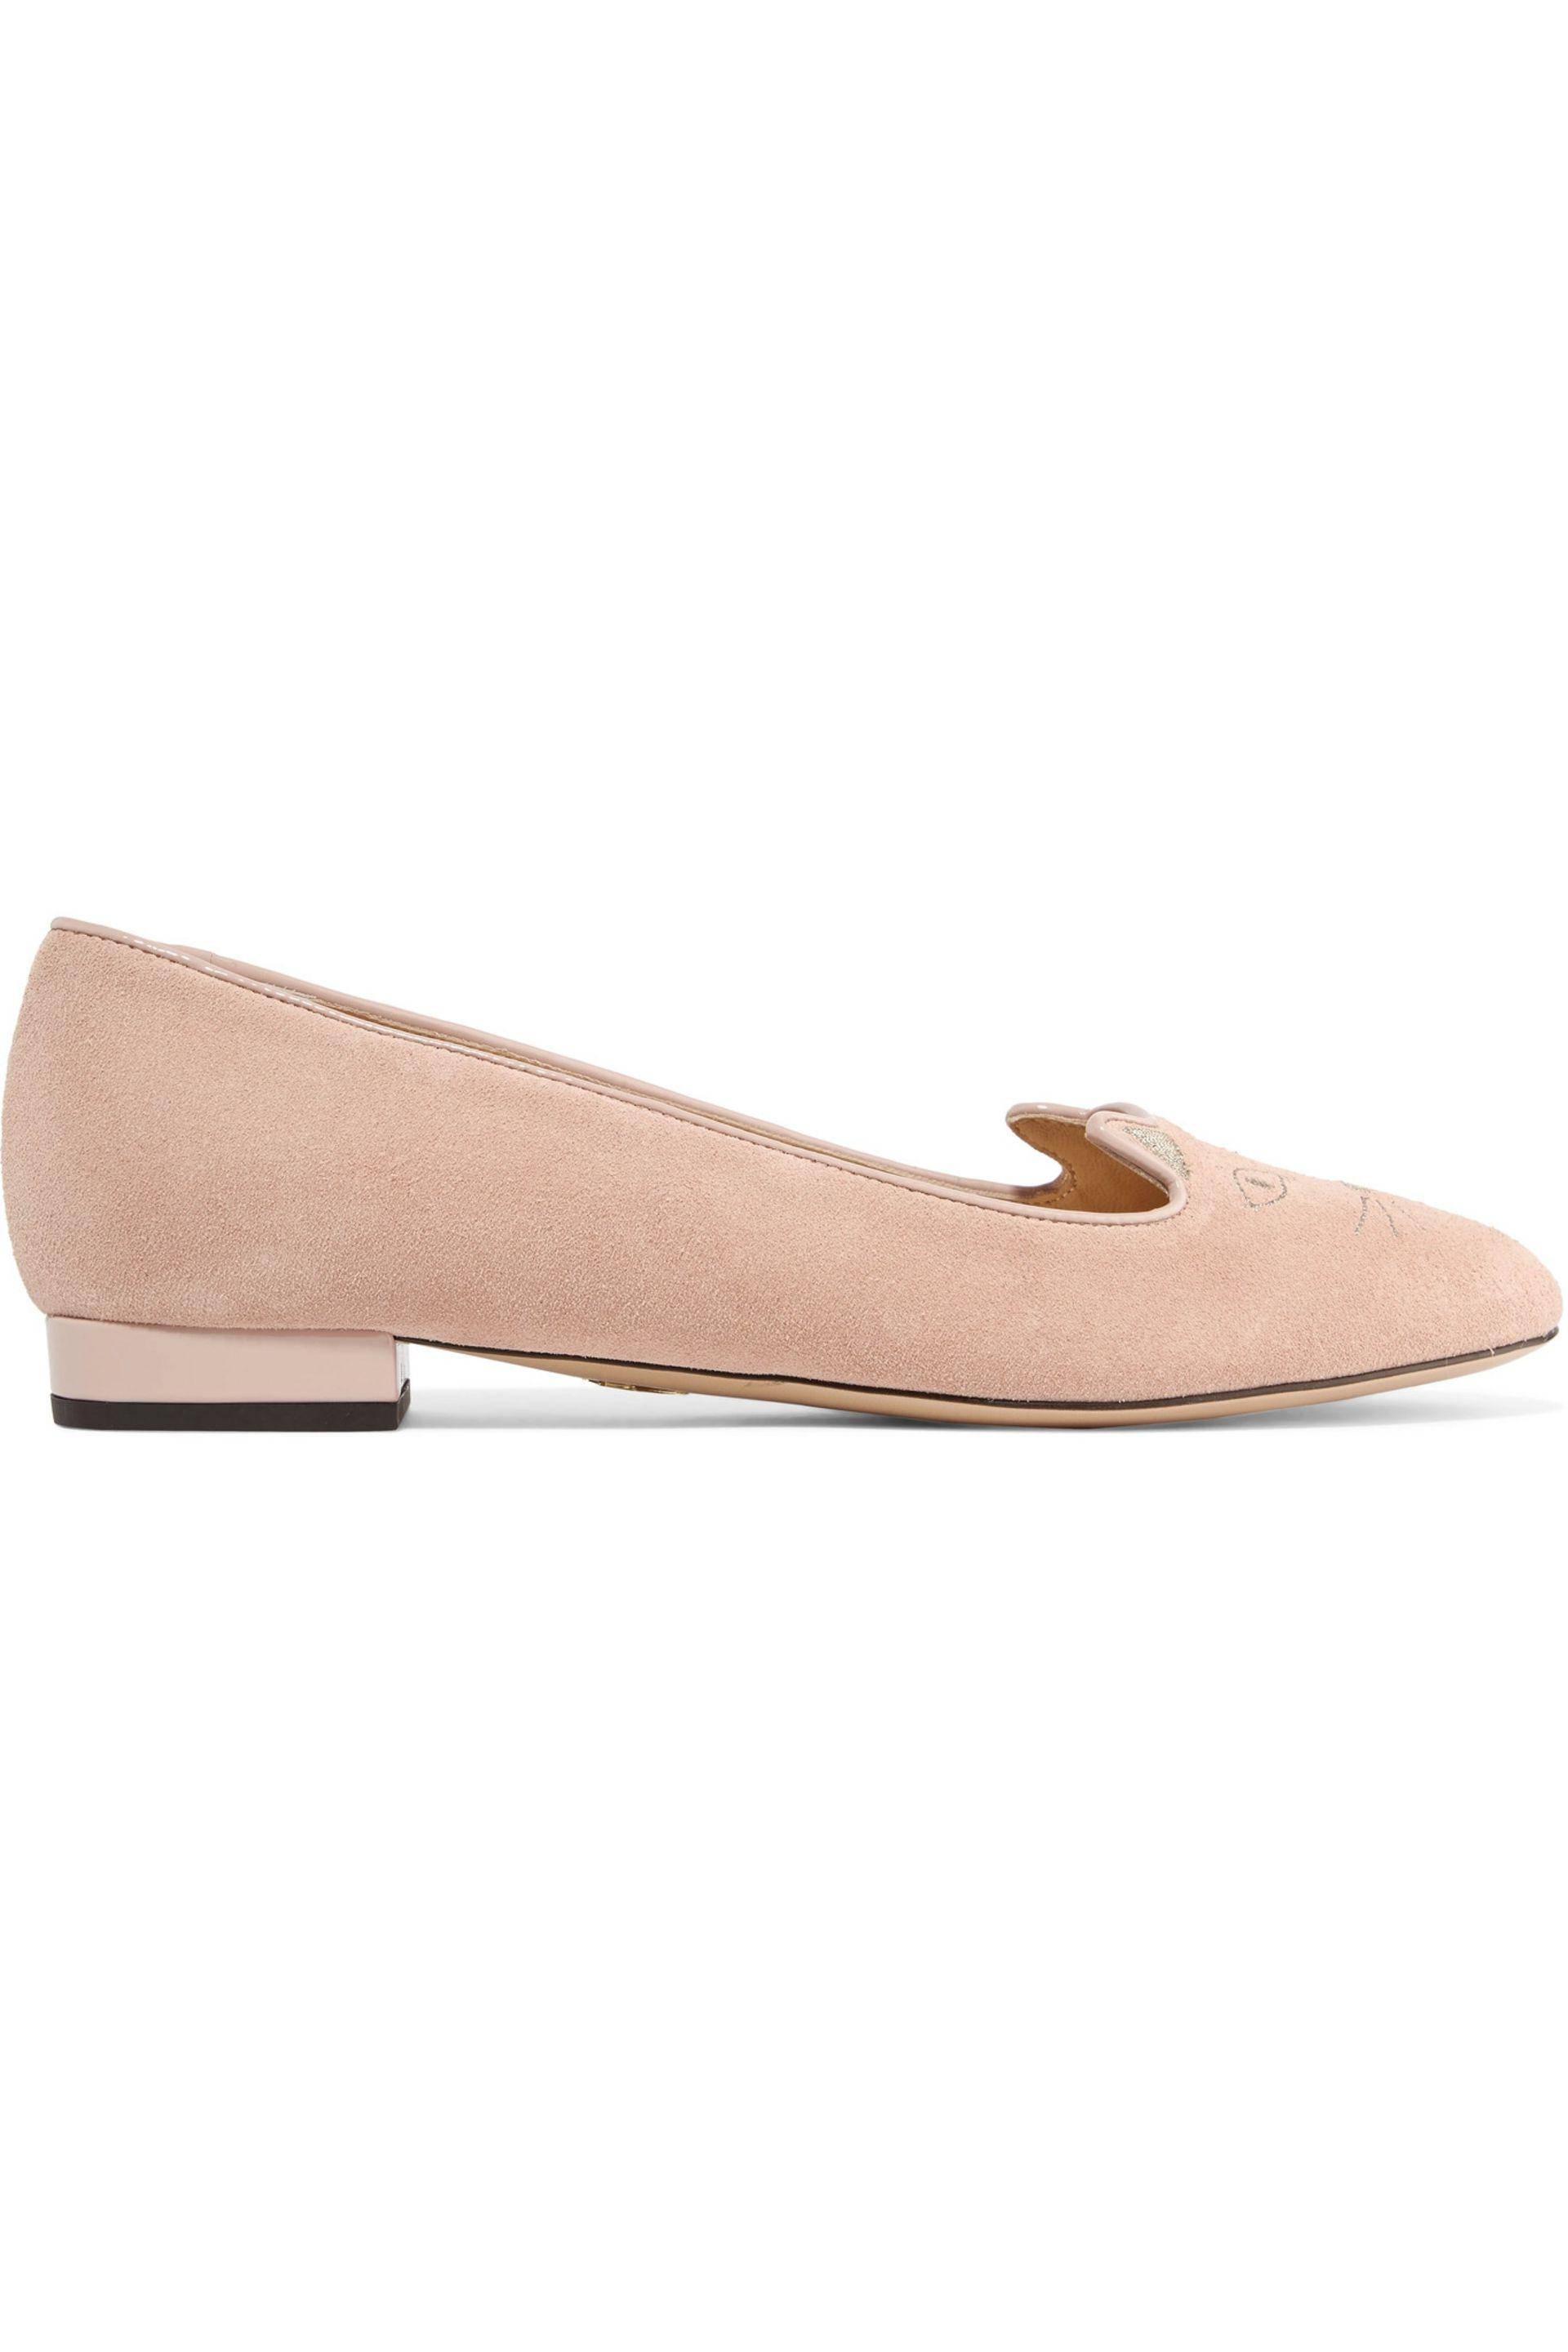 store sale Charlotte Olympia Embellished Suede Flats buy cheap good selling clearance cost discount in China p3fwrb2Ad